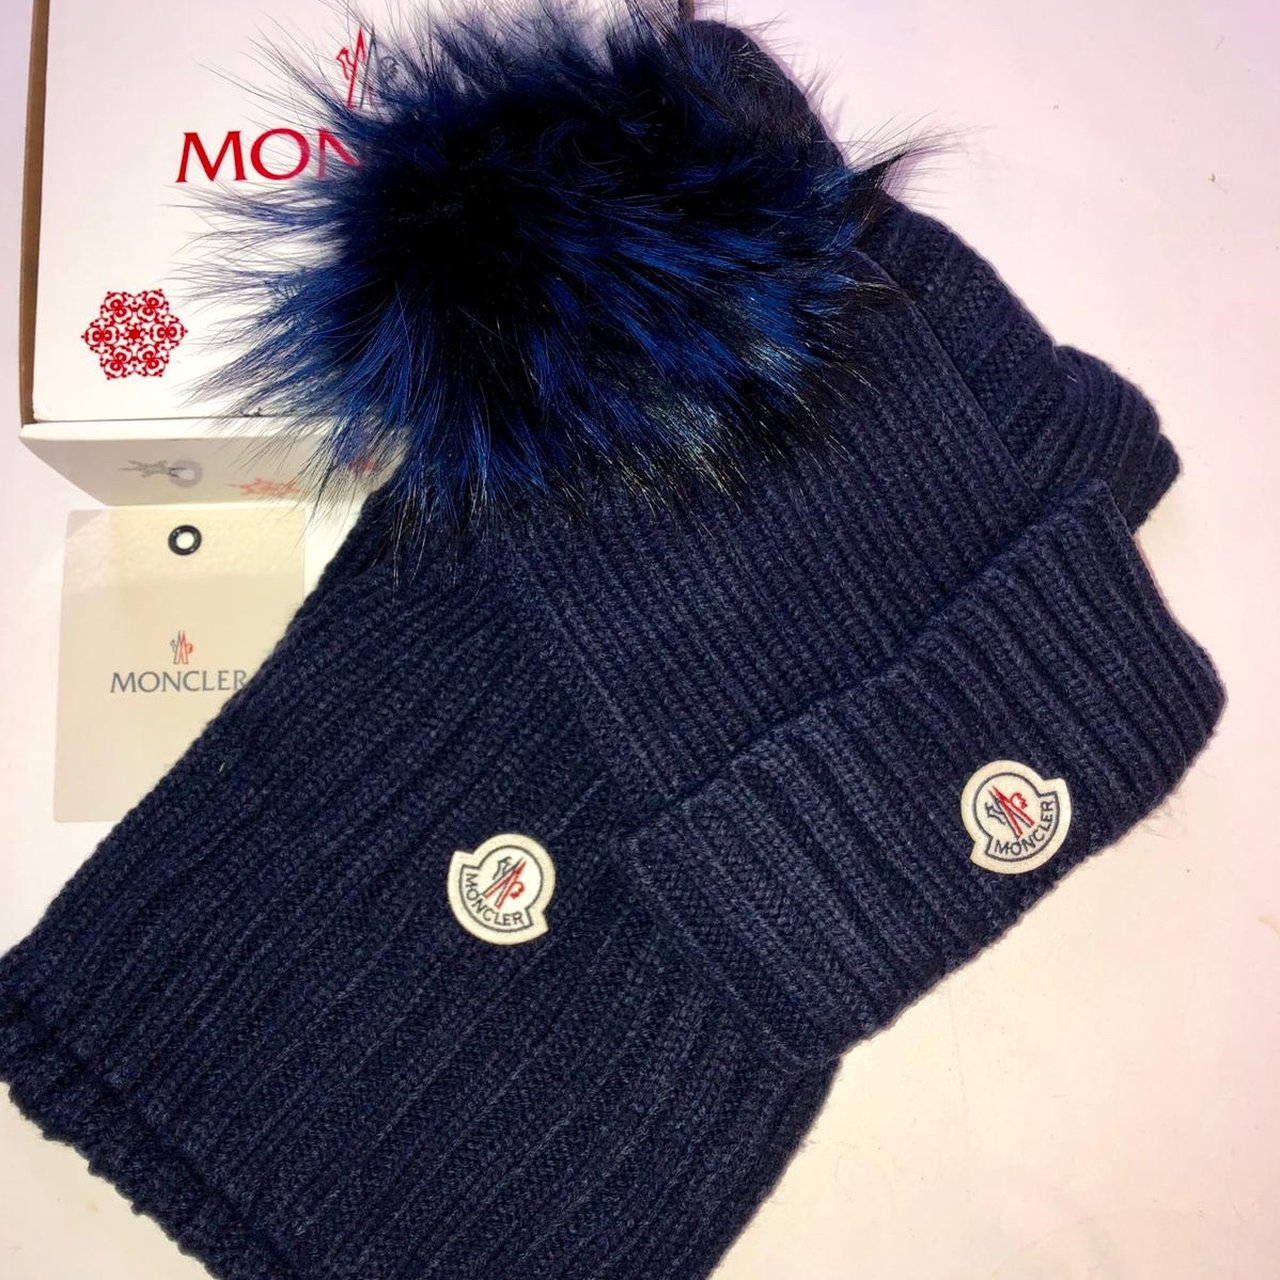 Moncler hat and scarf set new in box - Depop 2eb03dd68fc